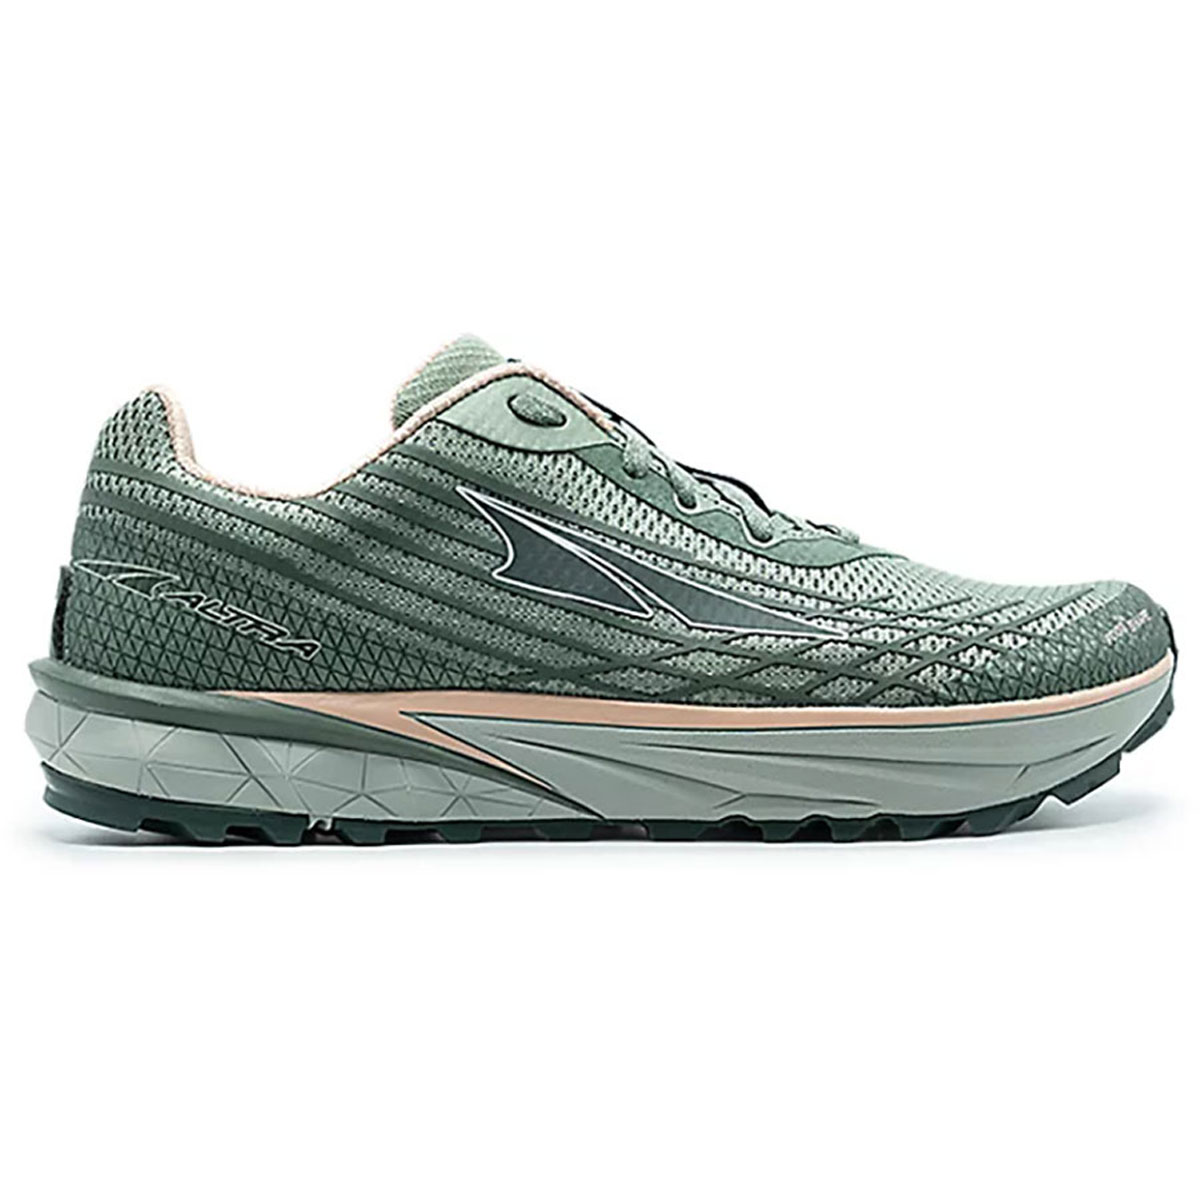 Women's Altra Timp 2 Running Shoe - Color: Lily Pad Green (Regular Width) - Size: 6.5, Lily Pad Green, large, image 1